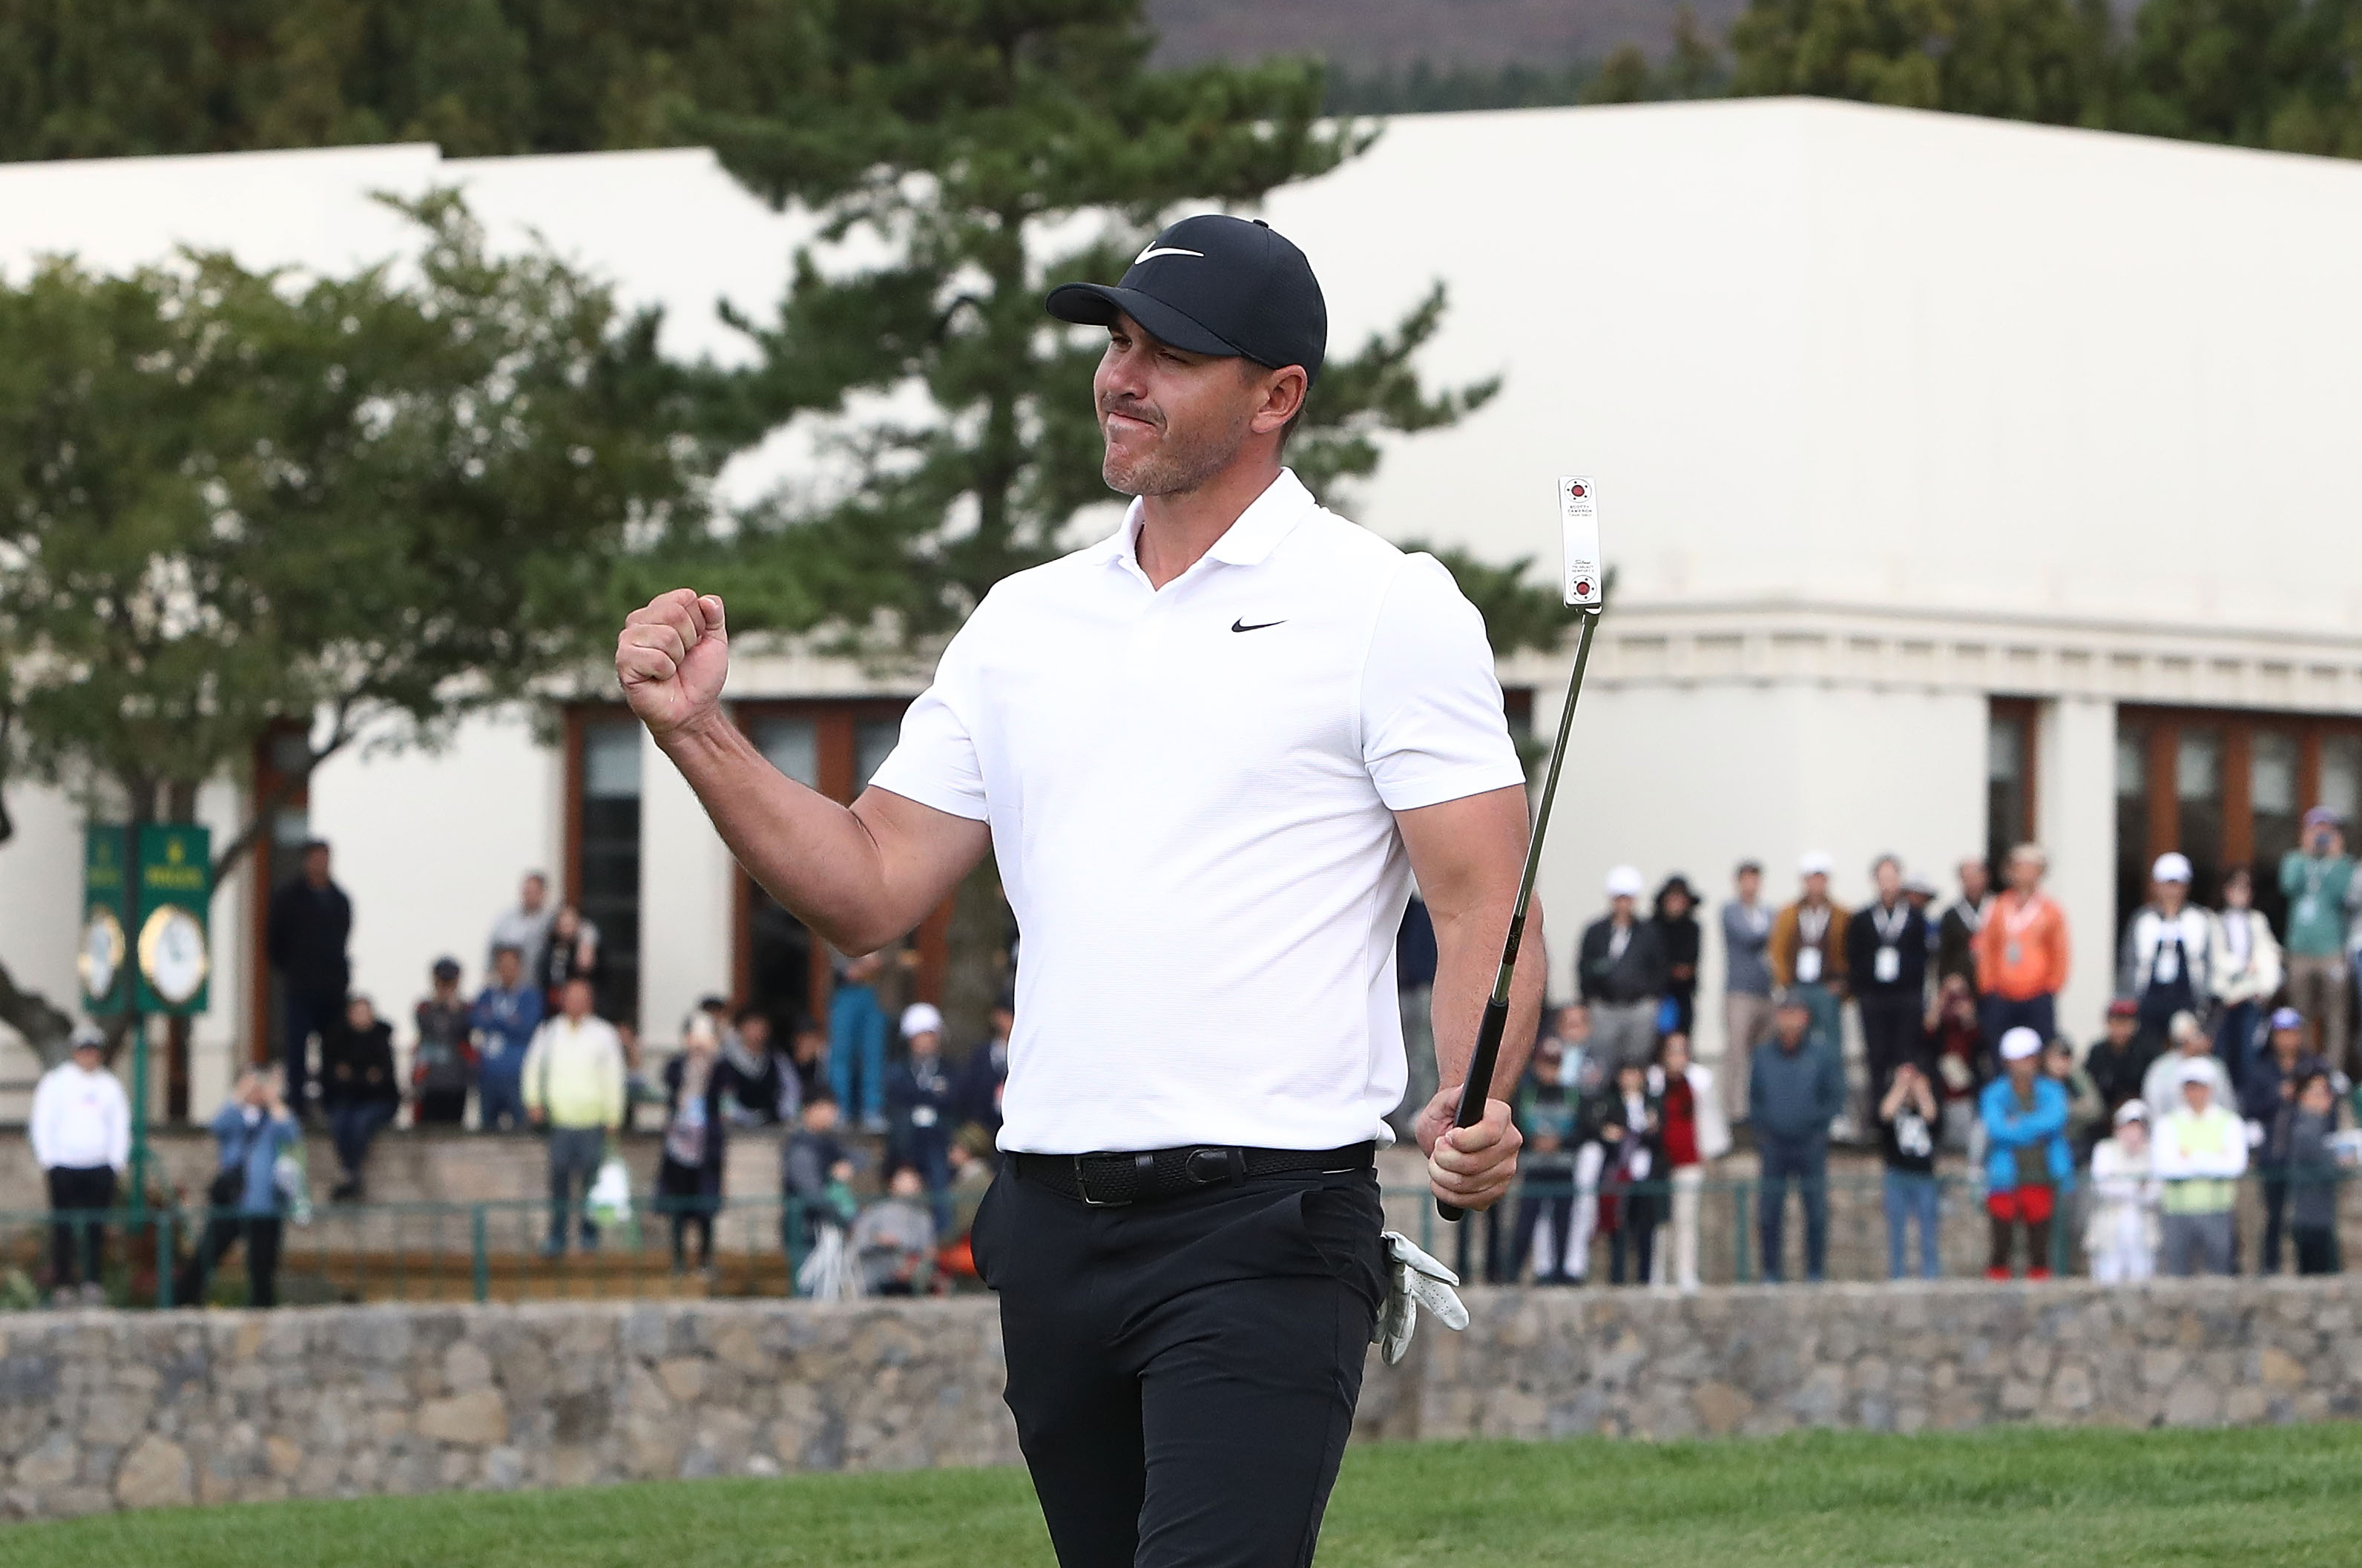 JEJU, SOUTH KOREA - OCTOBER 21: Brooks Koepka of United States celebrates after wining putt on the 18th green during the final round of the CJ Cup at the Nine Bridges on October 21, 2018 in Jeju, South Korea. (Photo by Chung Sung-Jun/Getty Images)